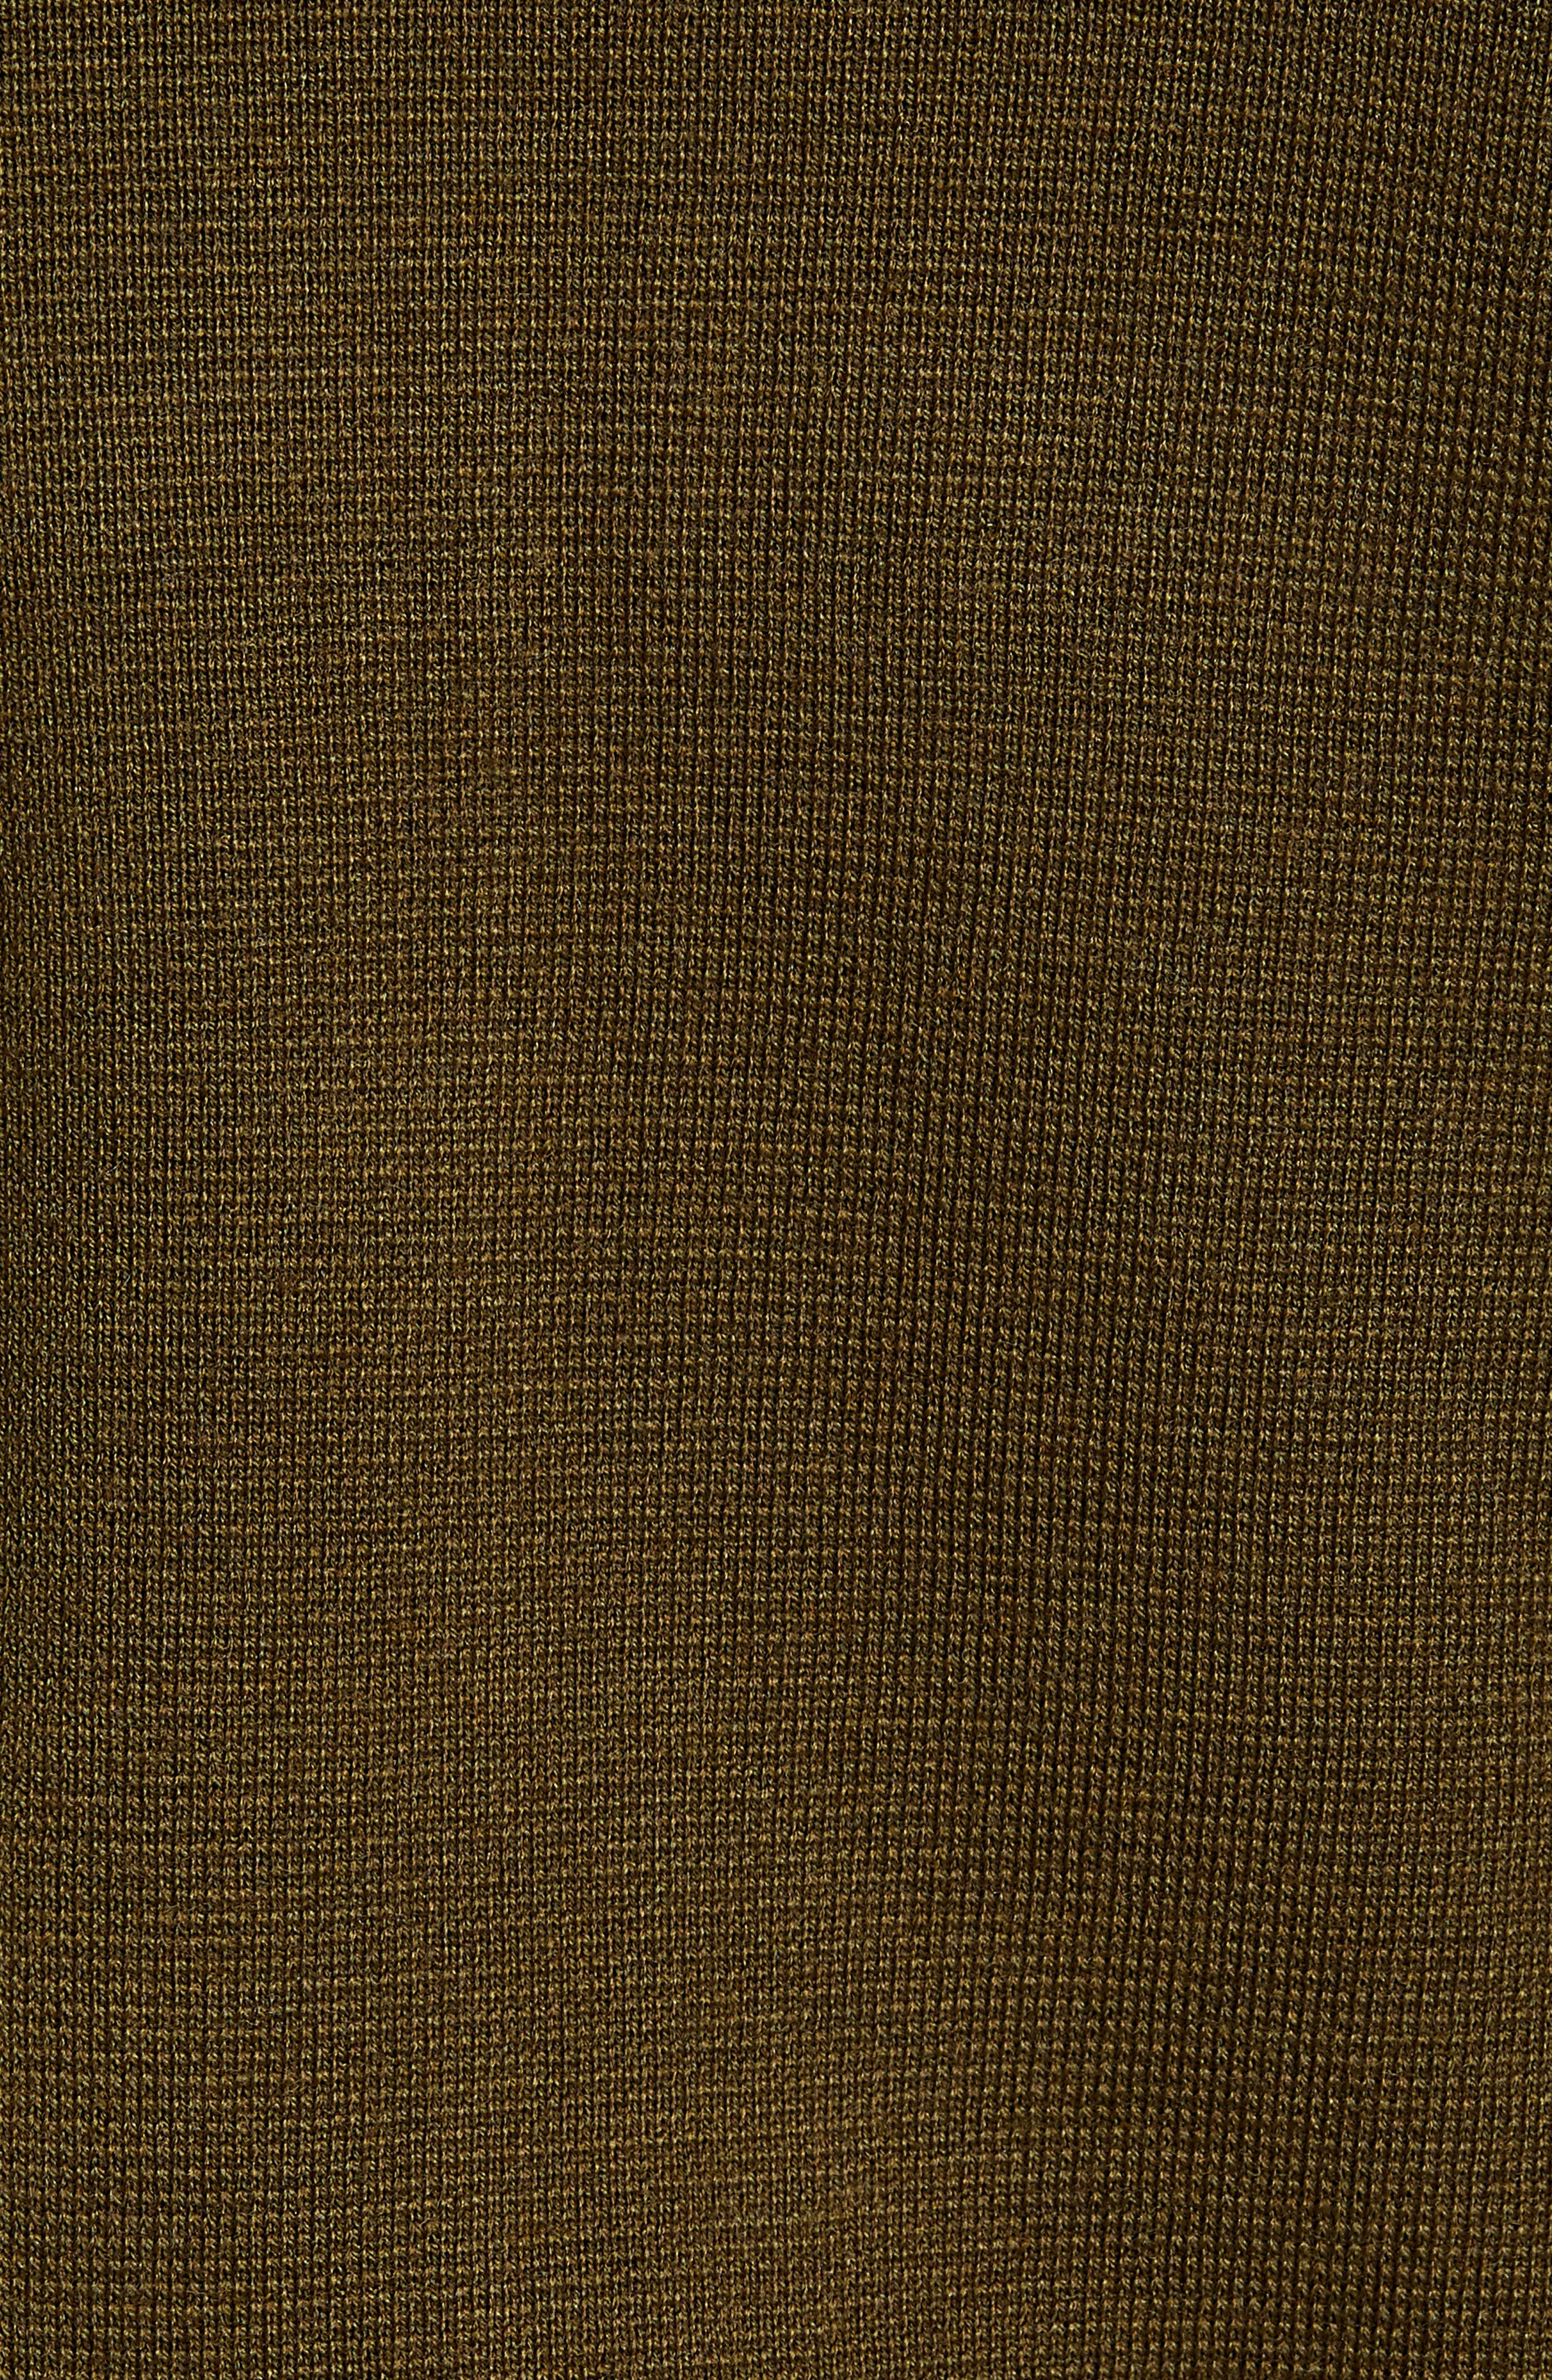 Akwa Slim Fit Zip Wool Blend Sweater,                             Alternate thumbnail 5, color,                             KHAKI